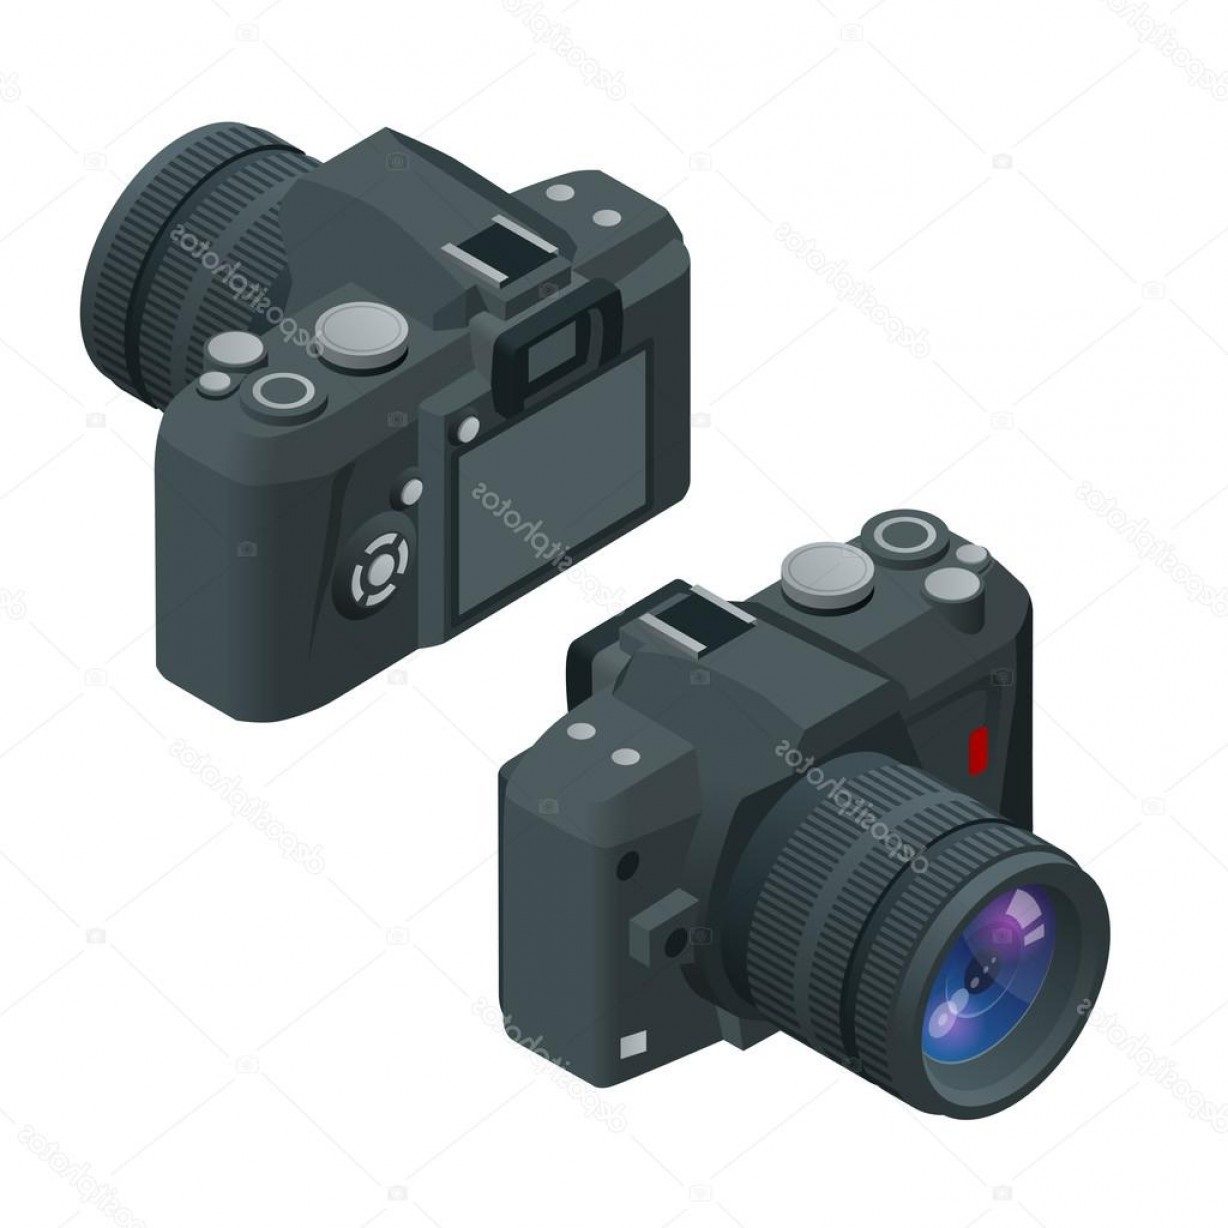 SLR Camera Vector: Stock Illustration Digital Photo Camera Slr Camera